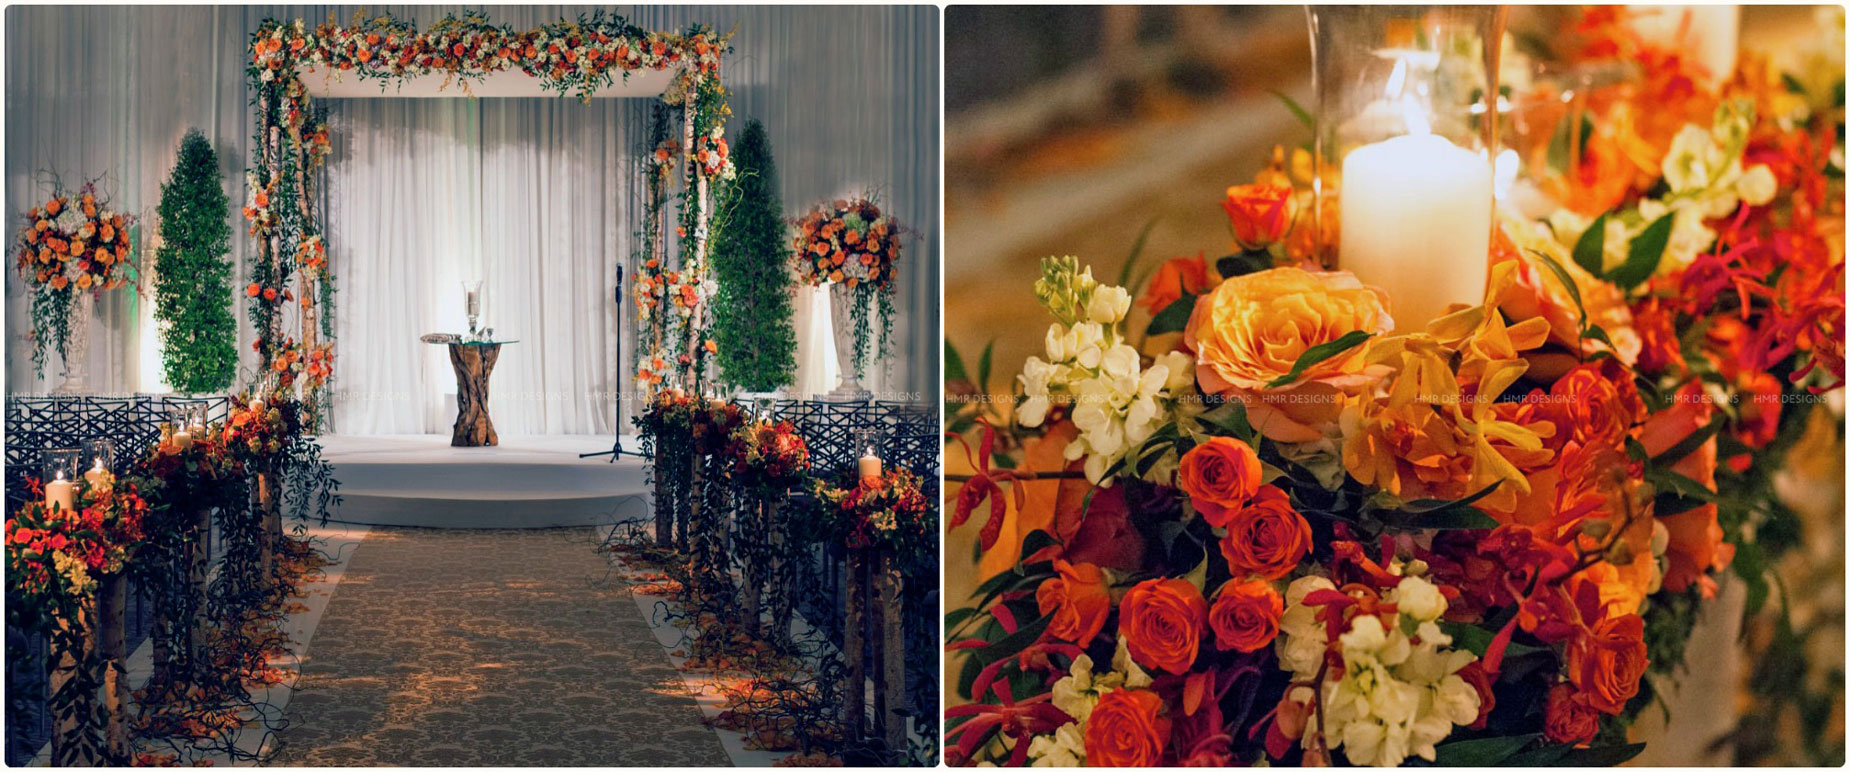 Autumn wedding at Radisson Blu Chicago by HMR Designs